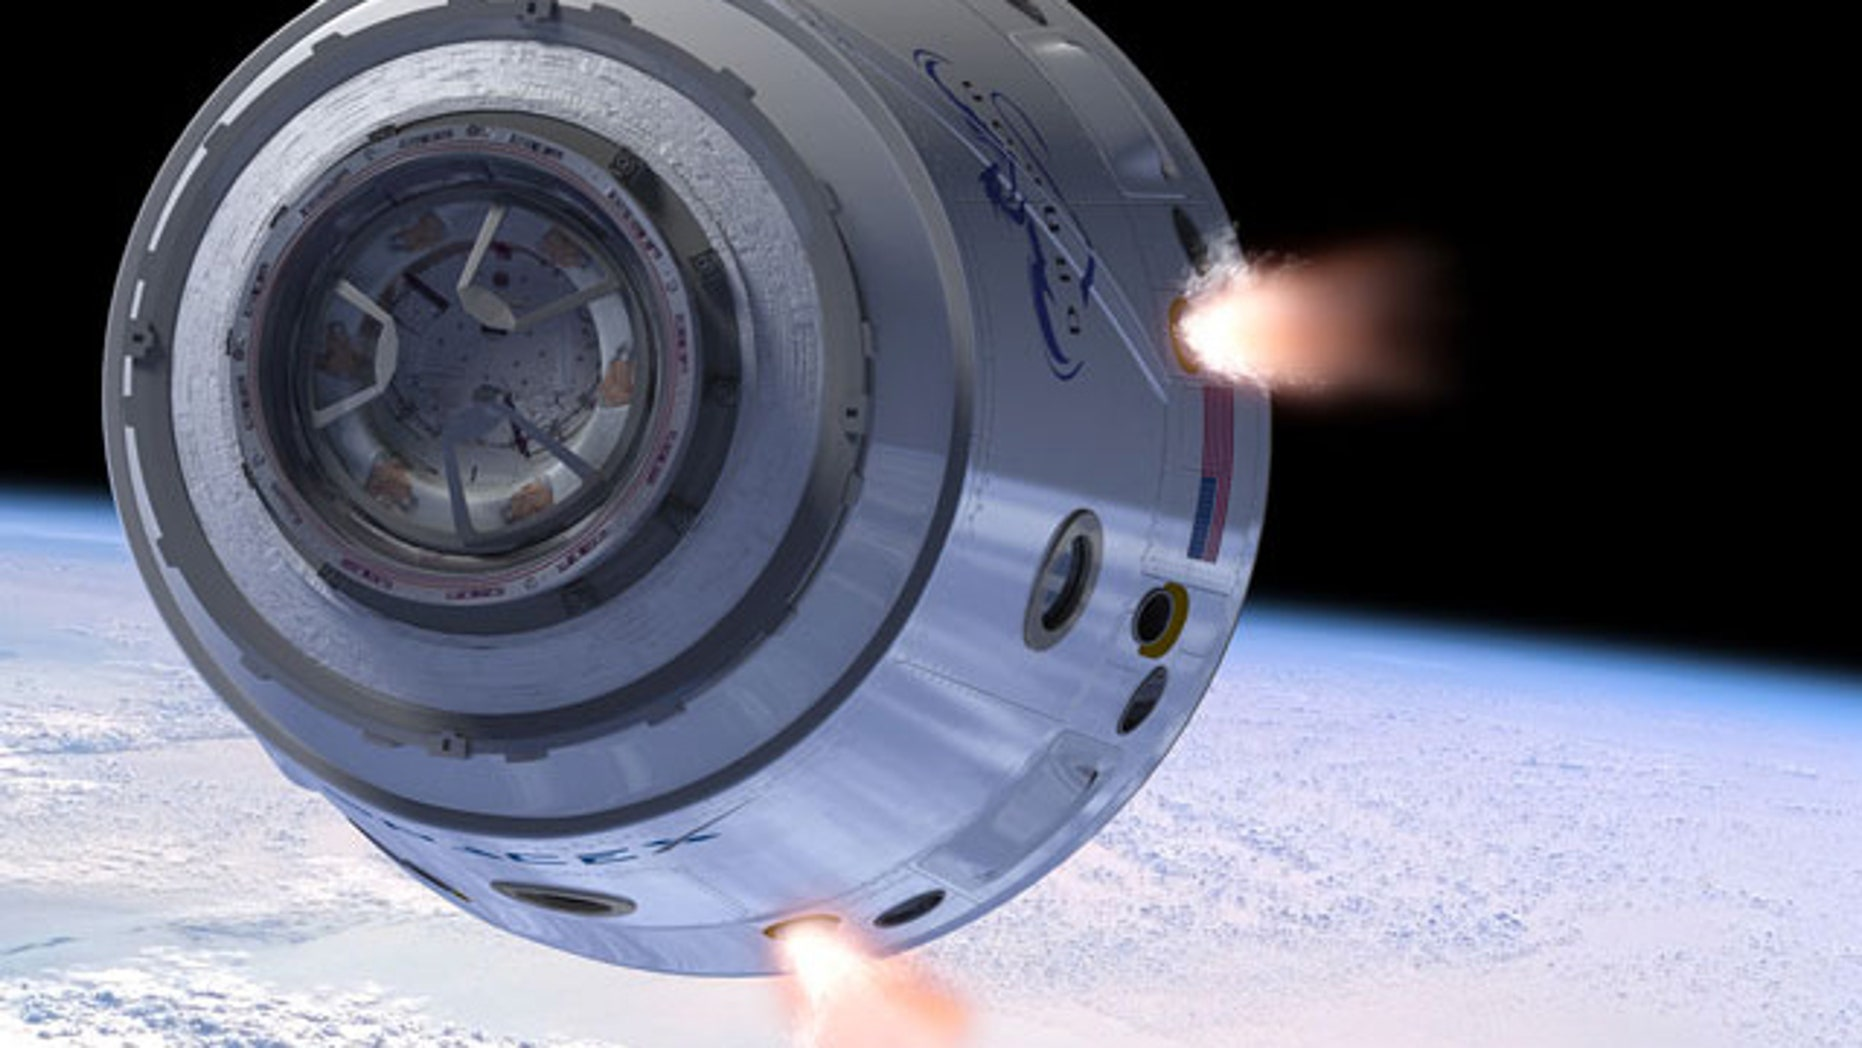 An artist's illustration of SpaceX's Dragon space capsule in Earth orbit.